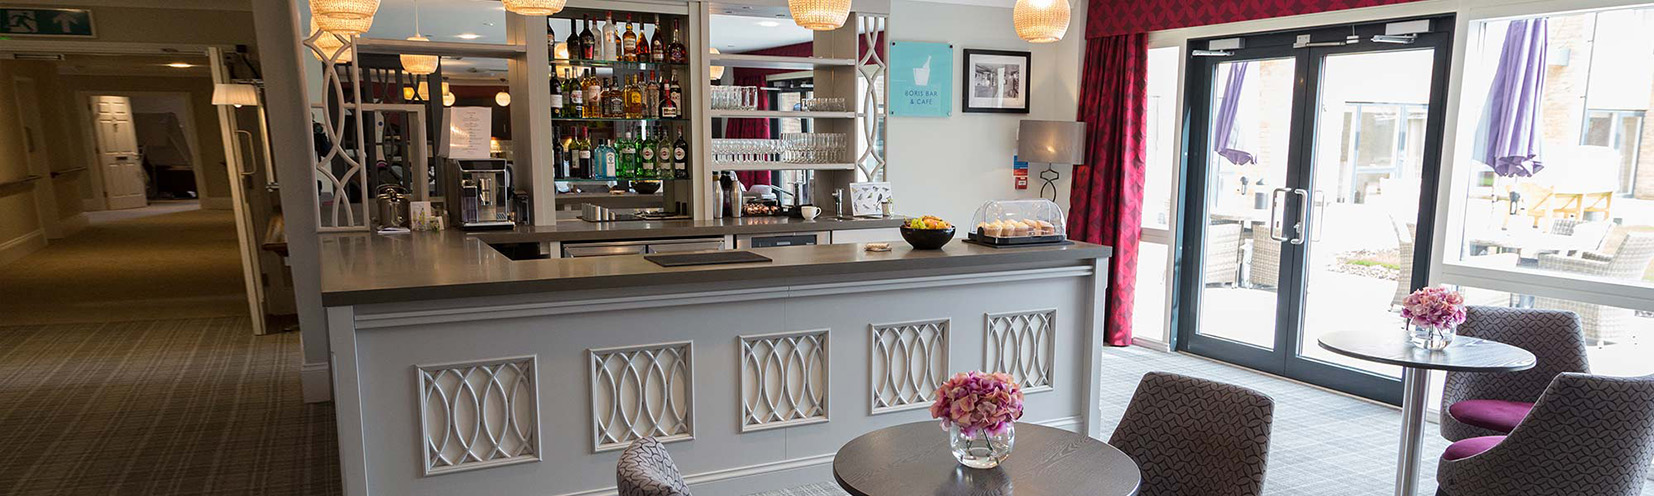 Bar at Bramshott Place Care Home. Image: Zero Point 8